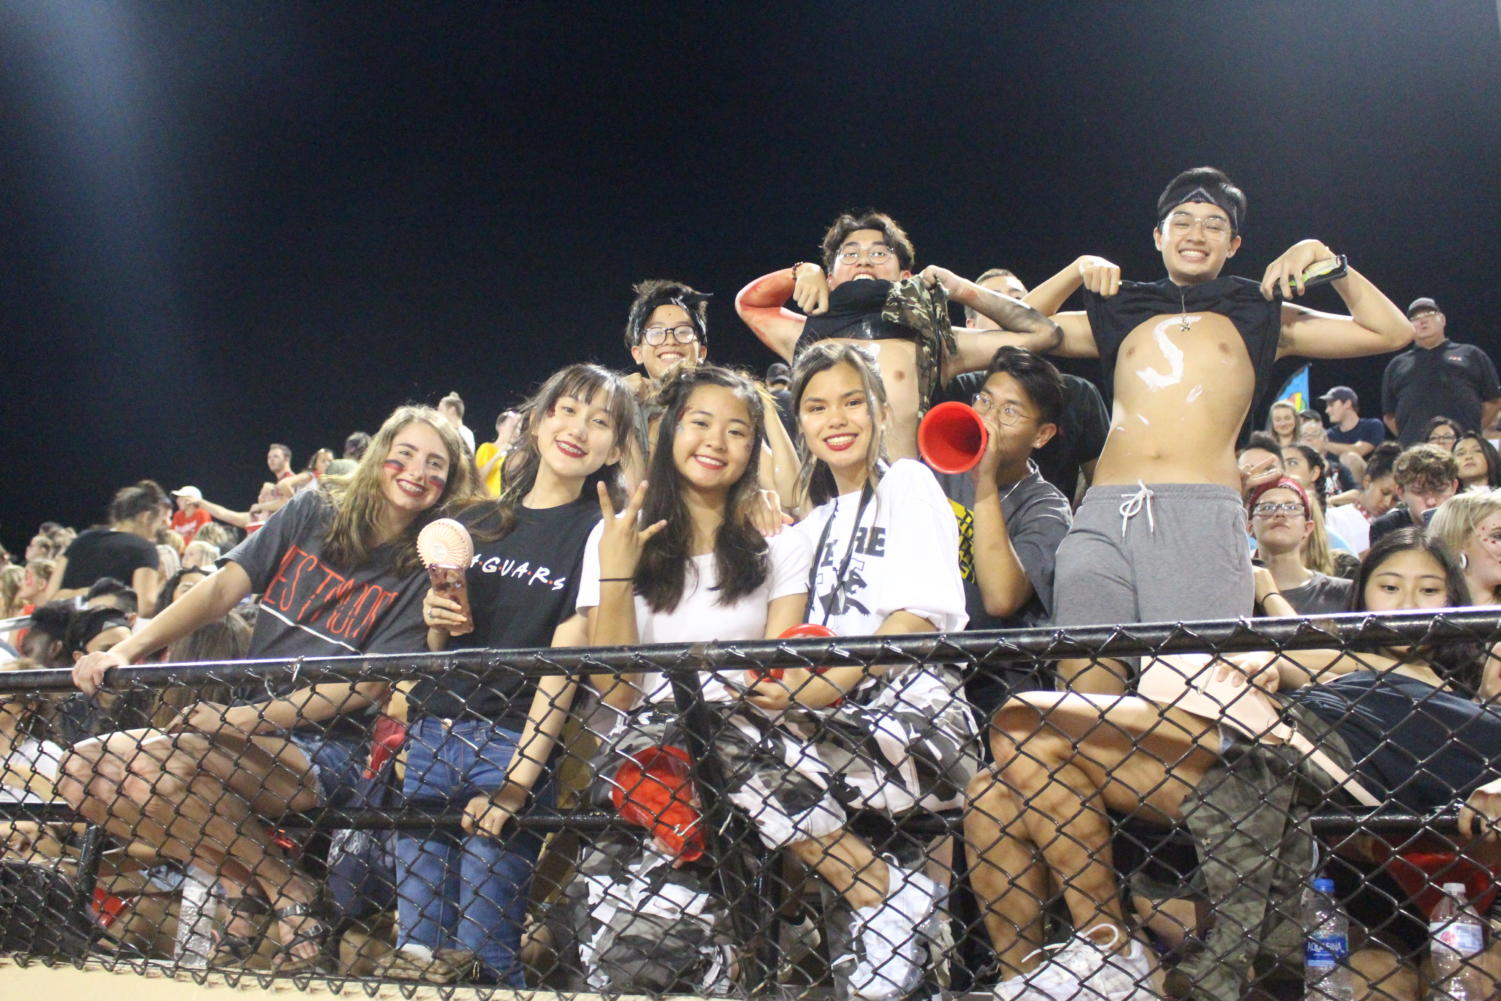 Westmoore students show their school spirit at the front of the student section. Wearing school colors, they shout their hearts out at the biggest sports game of the year, Moore War, the game between sports rivals Moore and Westmoore High School.